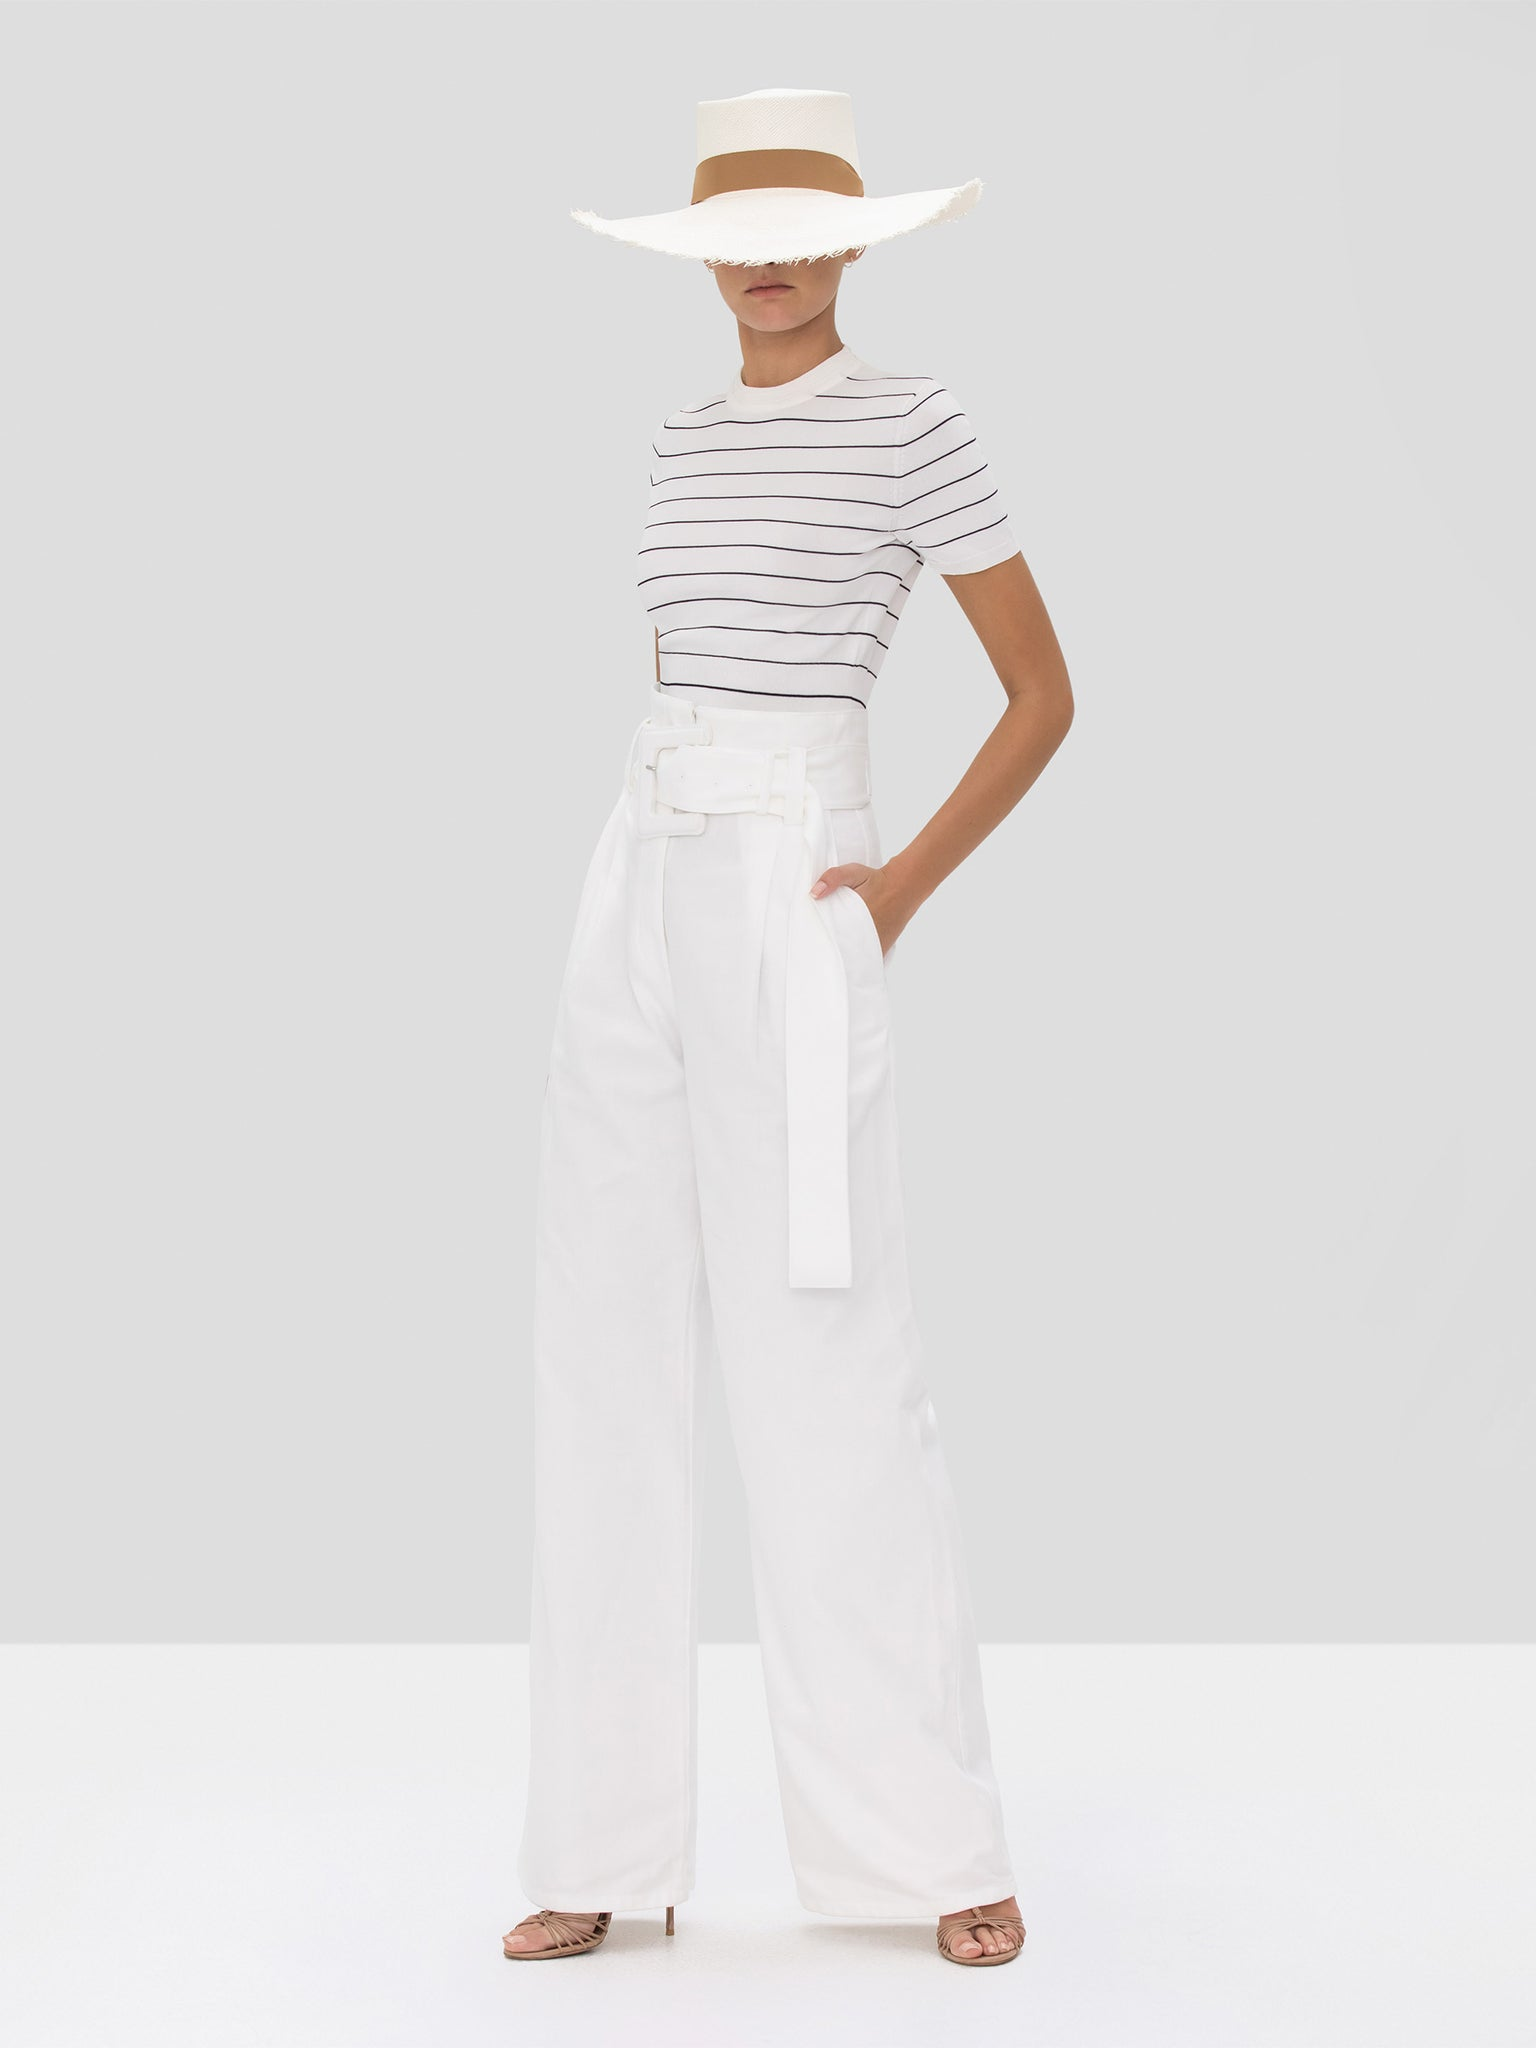 The Carlie Crop Top in White/Navy Stripes from the Spring Summer 2020